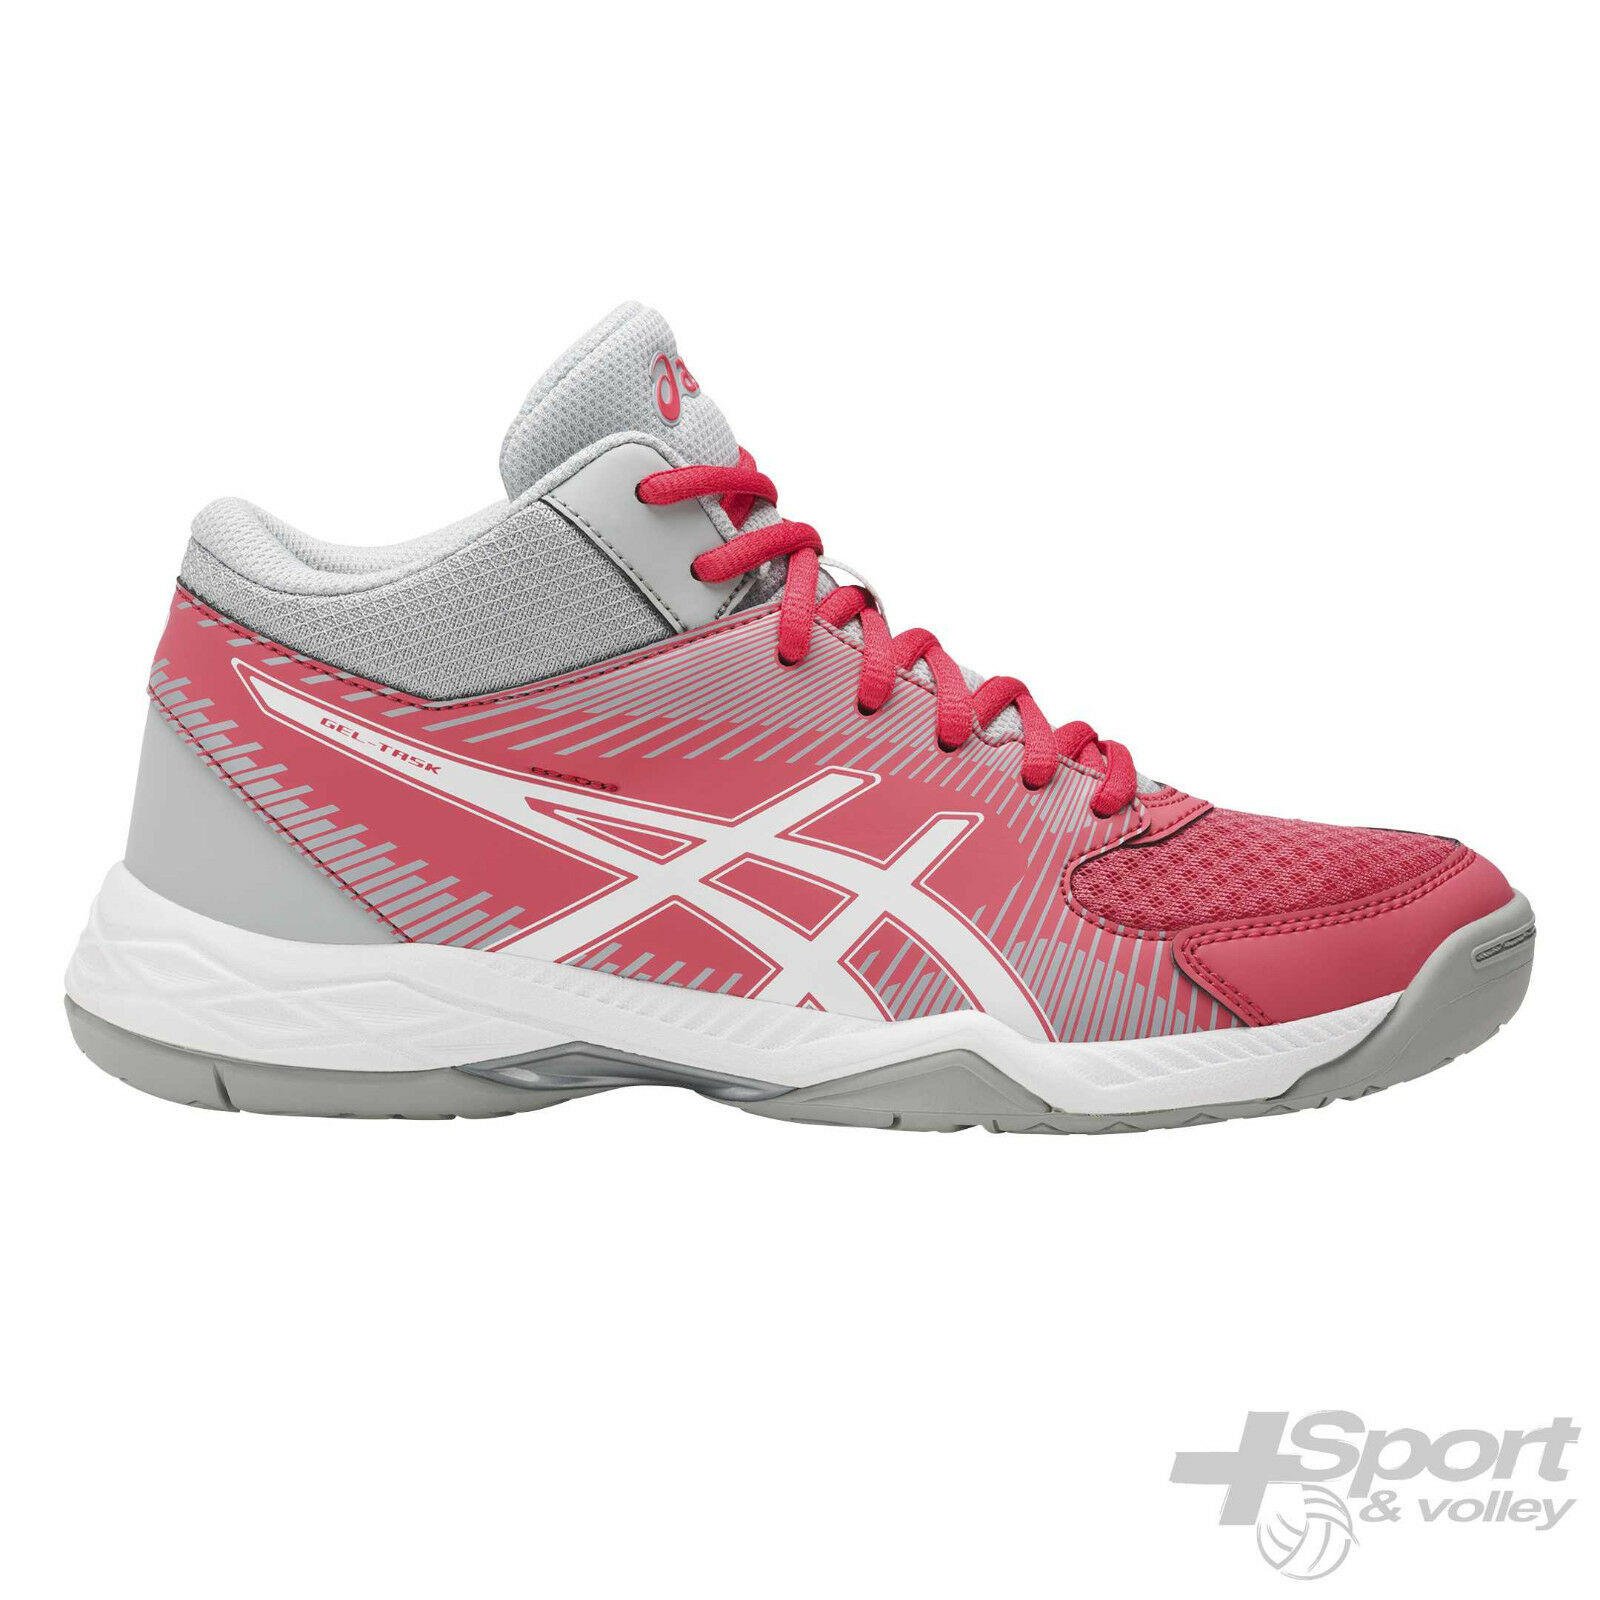 shoes Volleyball Asics gel task Mid Women b753y-1901